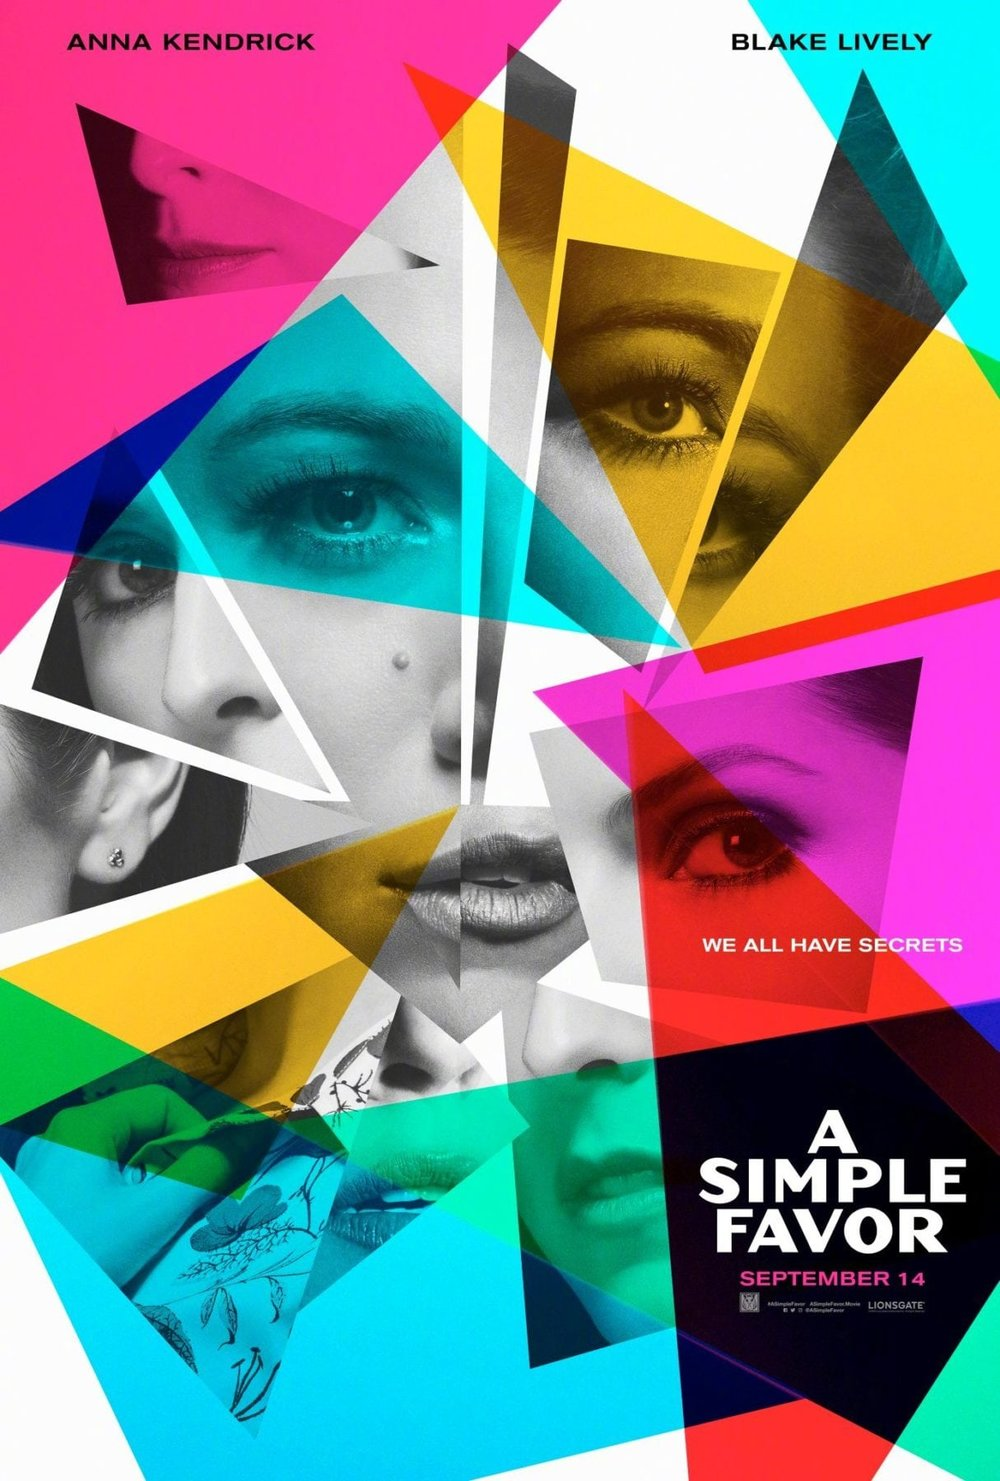 Twisting and twisted, A Simple Favor is the understated crime thriller that nobody expected this year. Half the fun is guessing what you think is happening, only to have your expectations subverted almost immediately. -